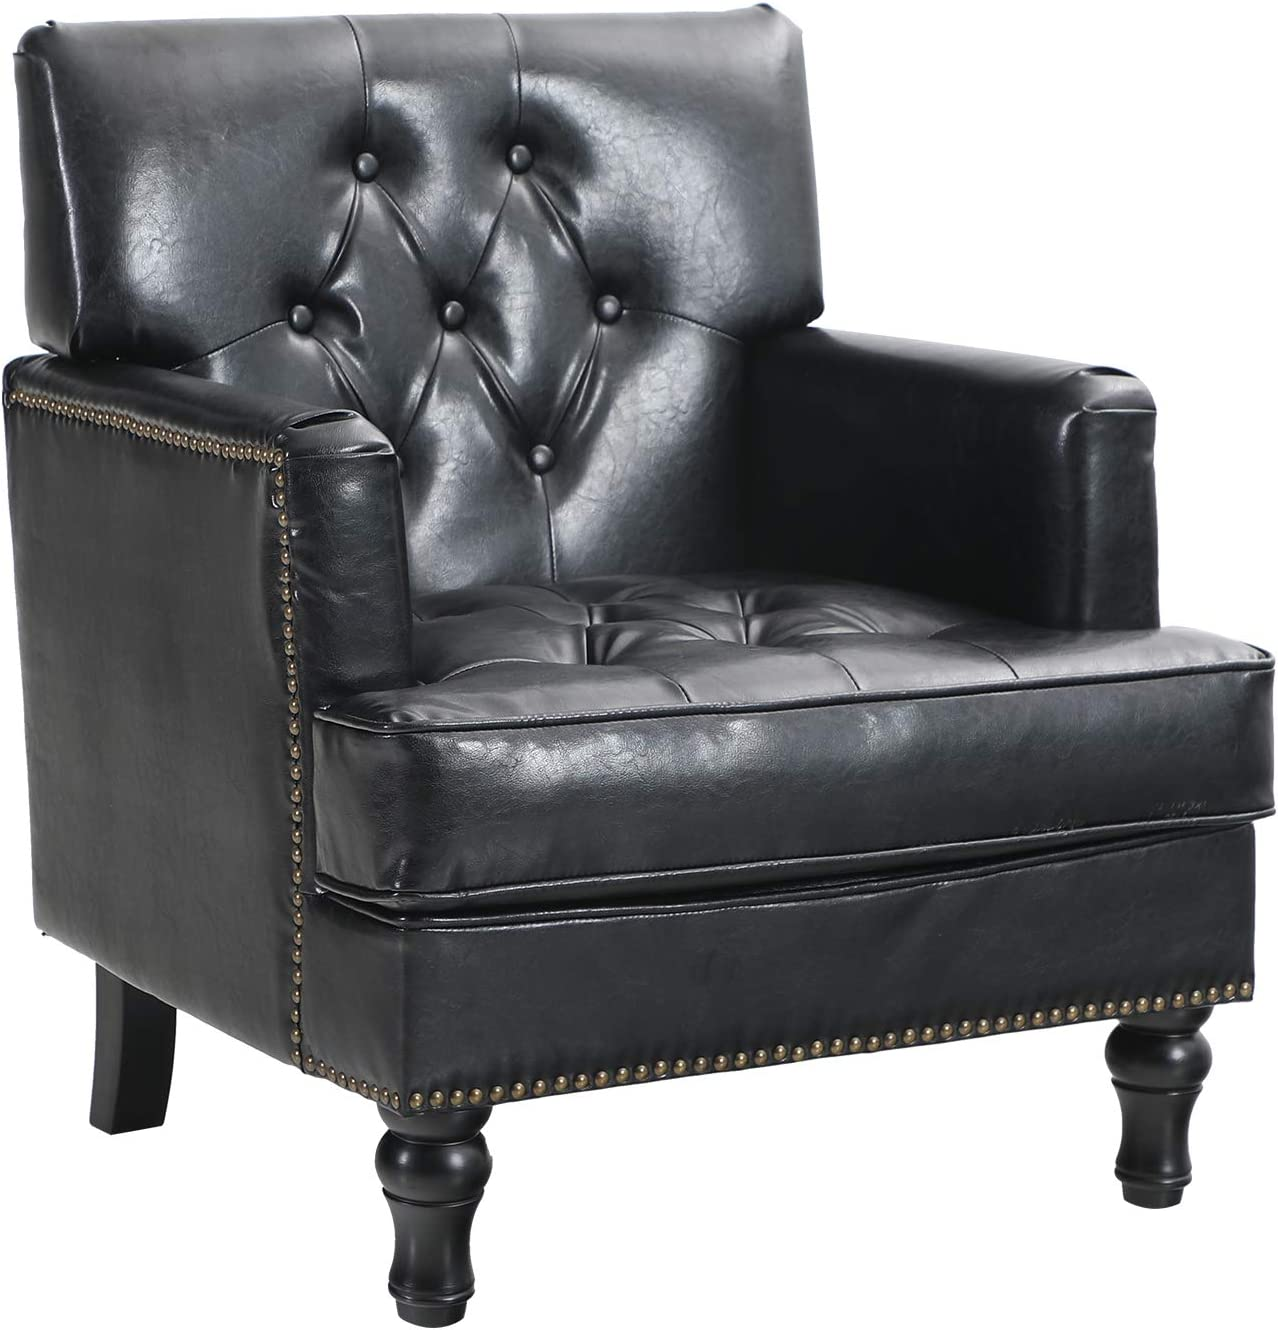 Sophia & William Living Room Chair Mid Century Accent Sofa Chair Modern PU Leather Armchair Comfy Tufted Single Sofa Reading Chair Living Room, Office Couch Club Chair, Black